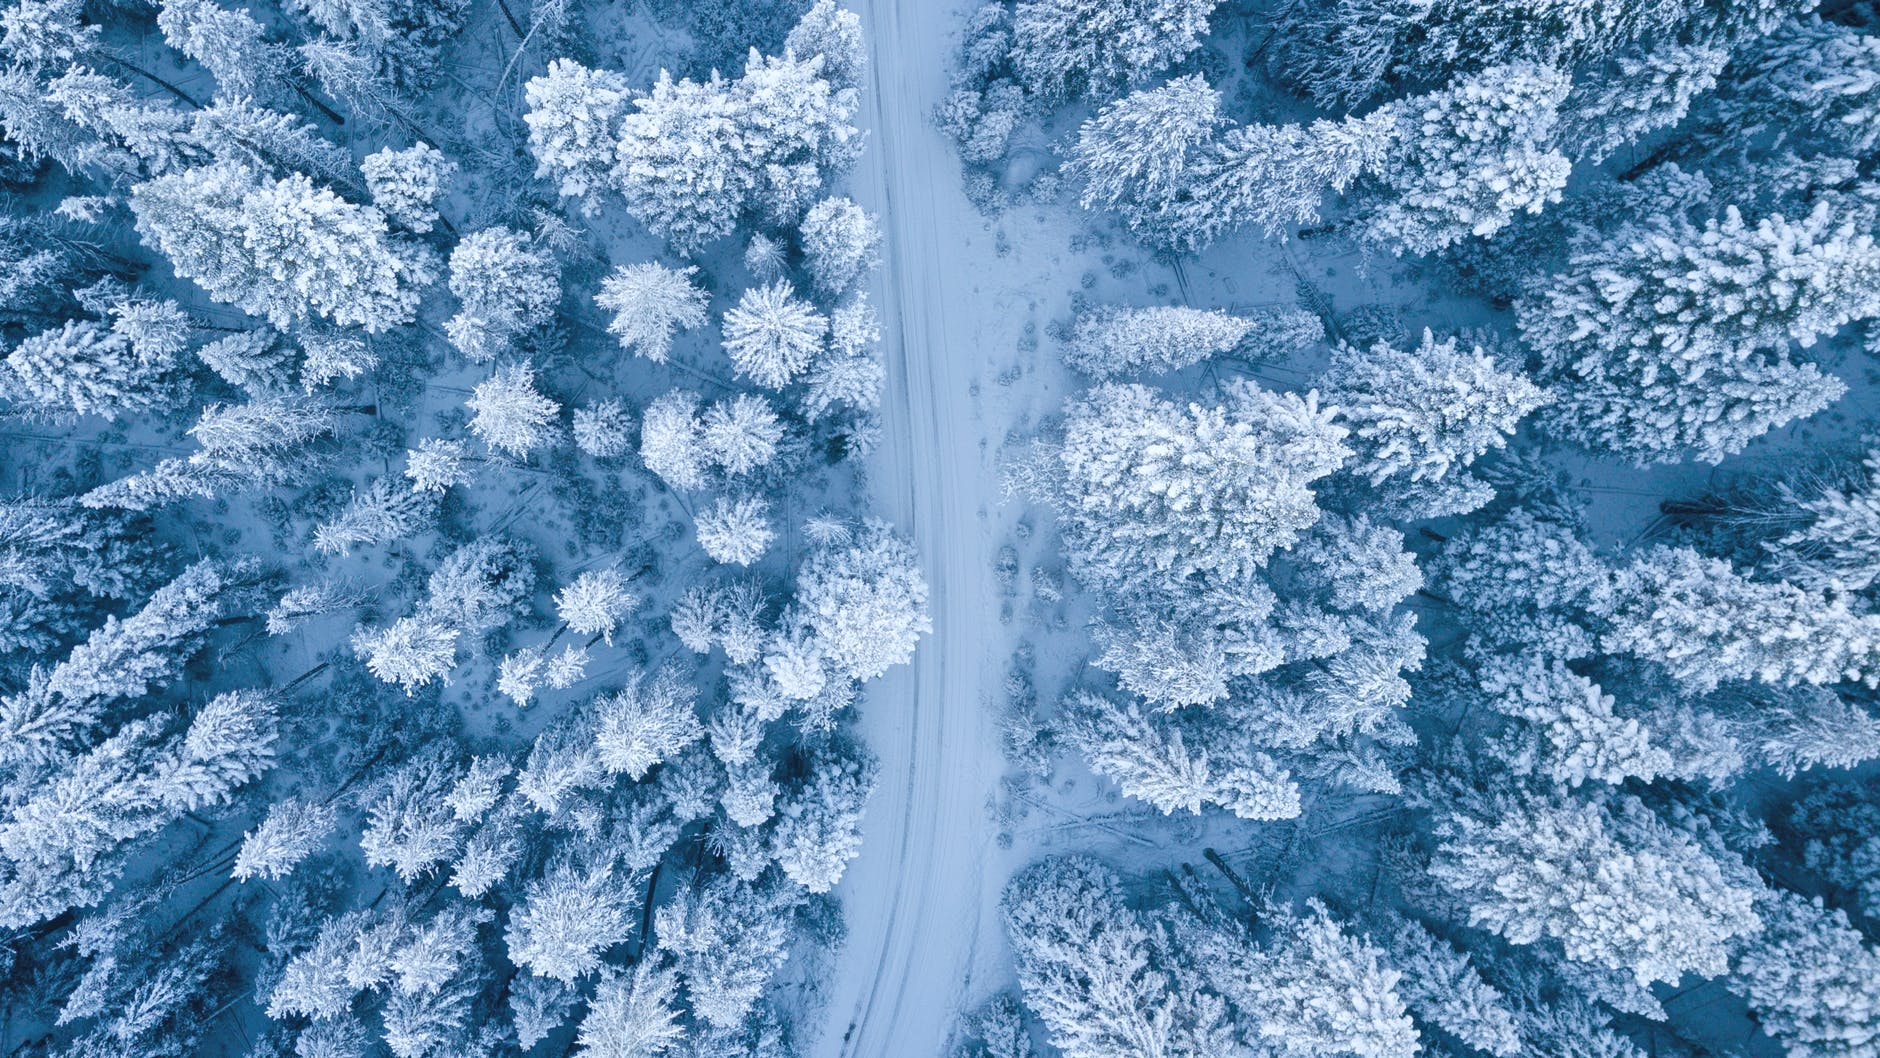 A winter road crossing a pine forest covered in snow.